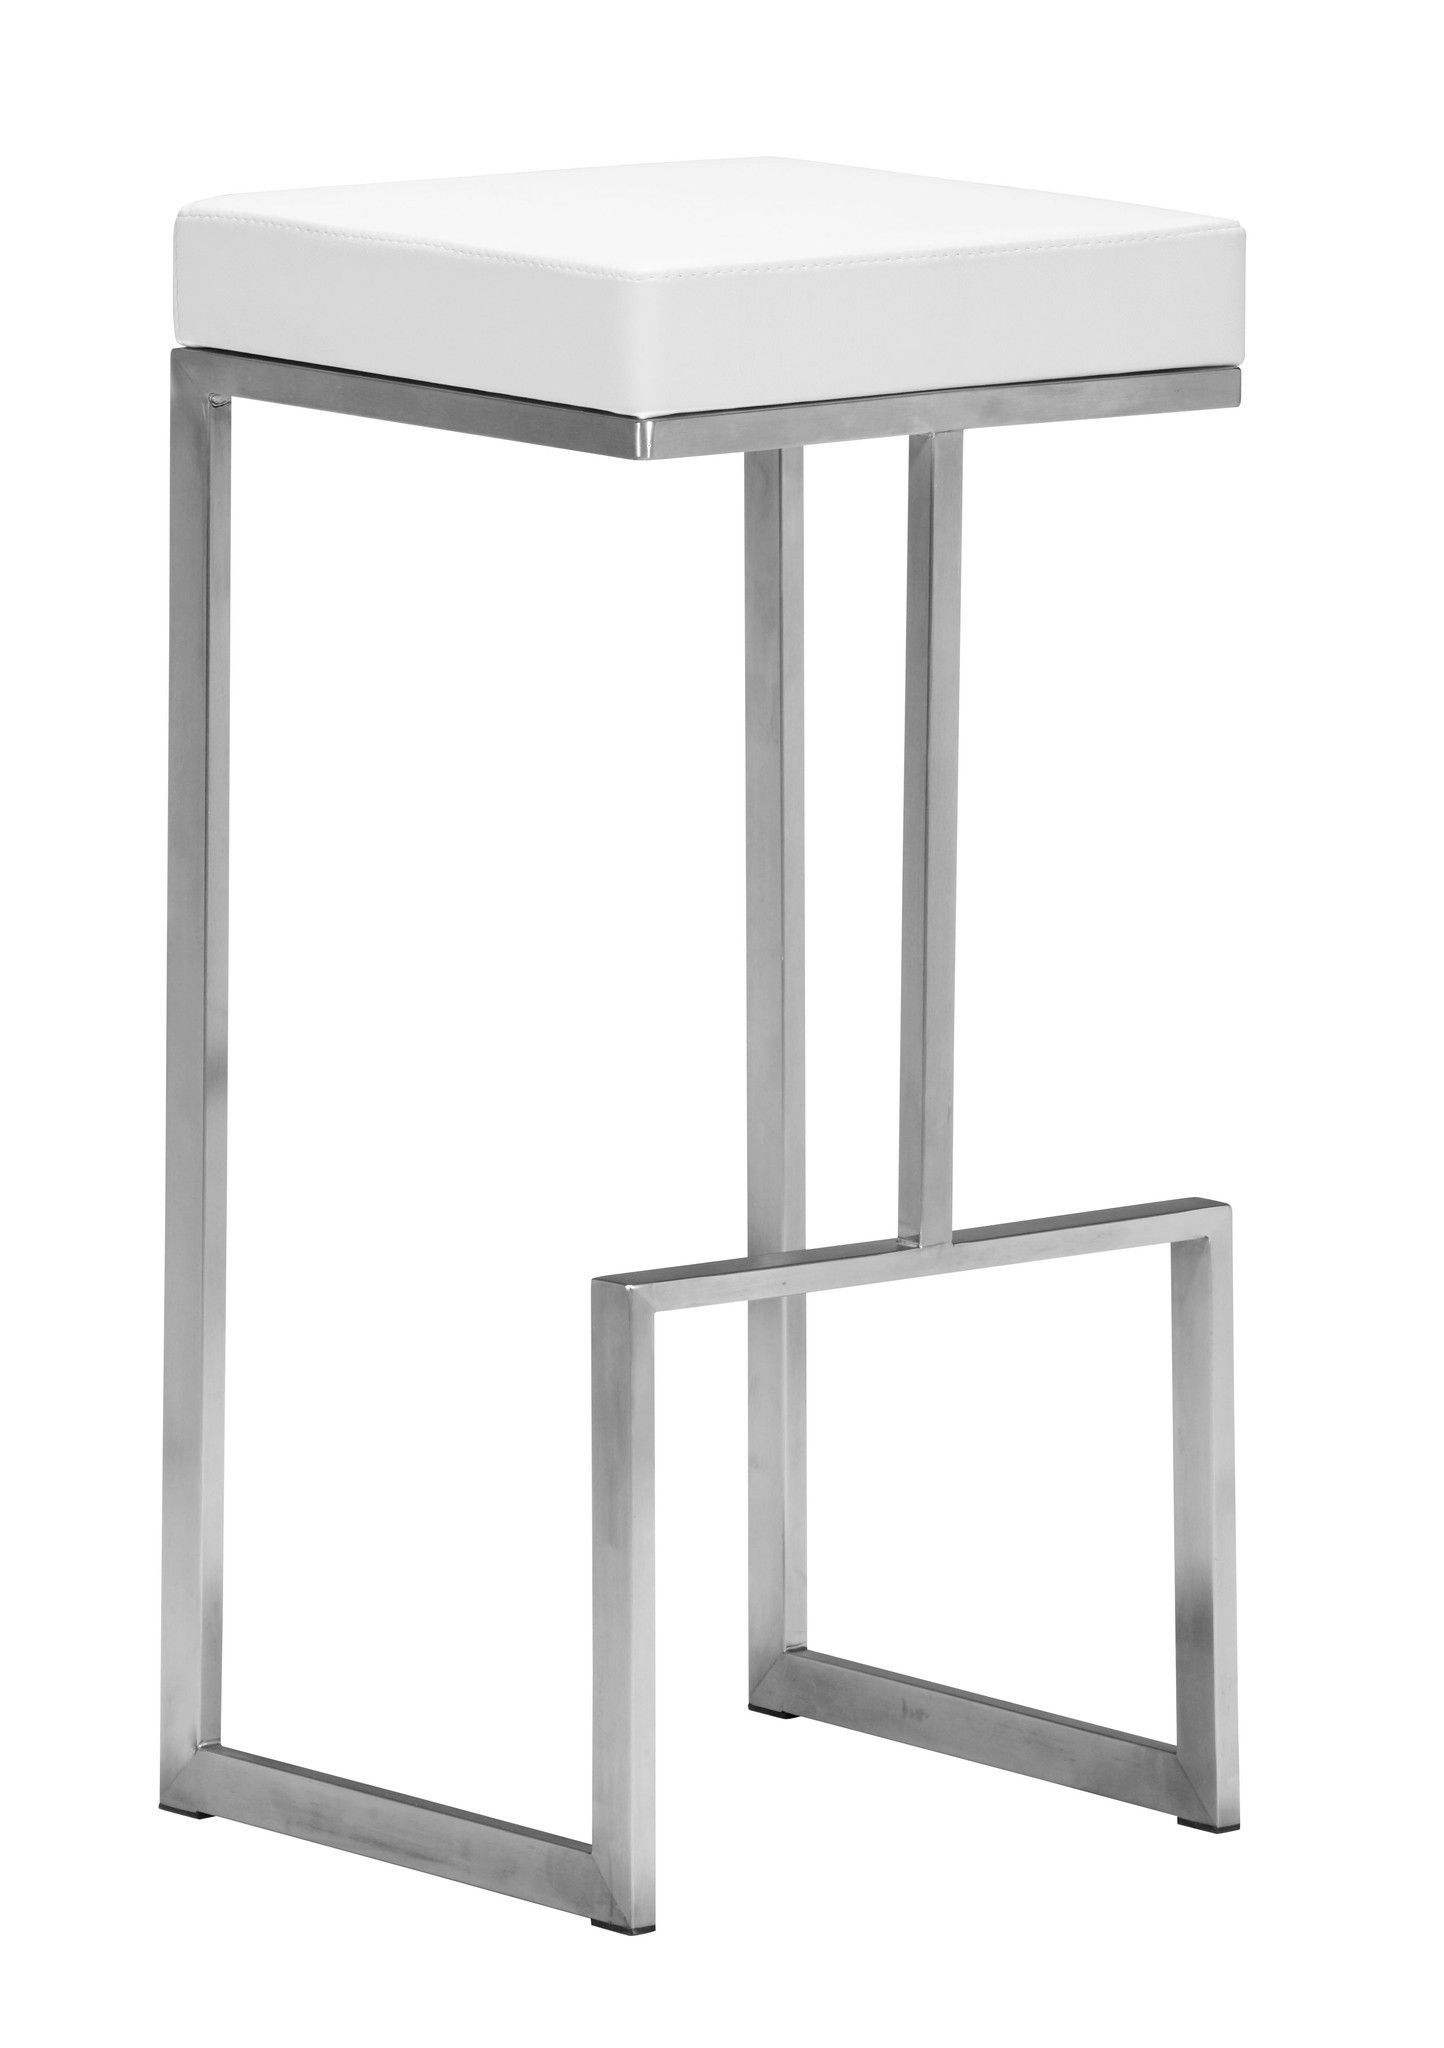 30 in bar stools. Darwen Bar Stool In White Leatherette \u0026 Brushed Stainless Steel (Set Of 30 Stools